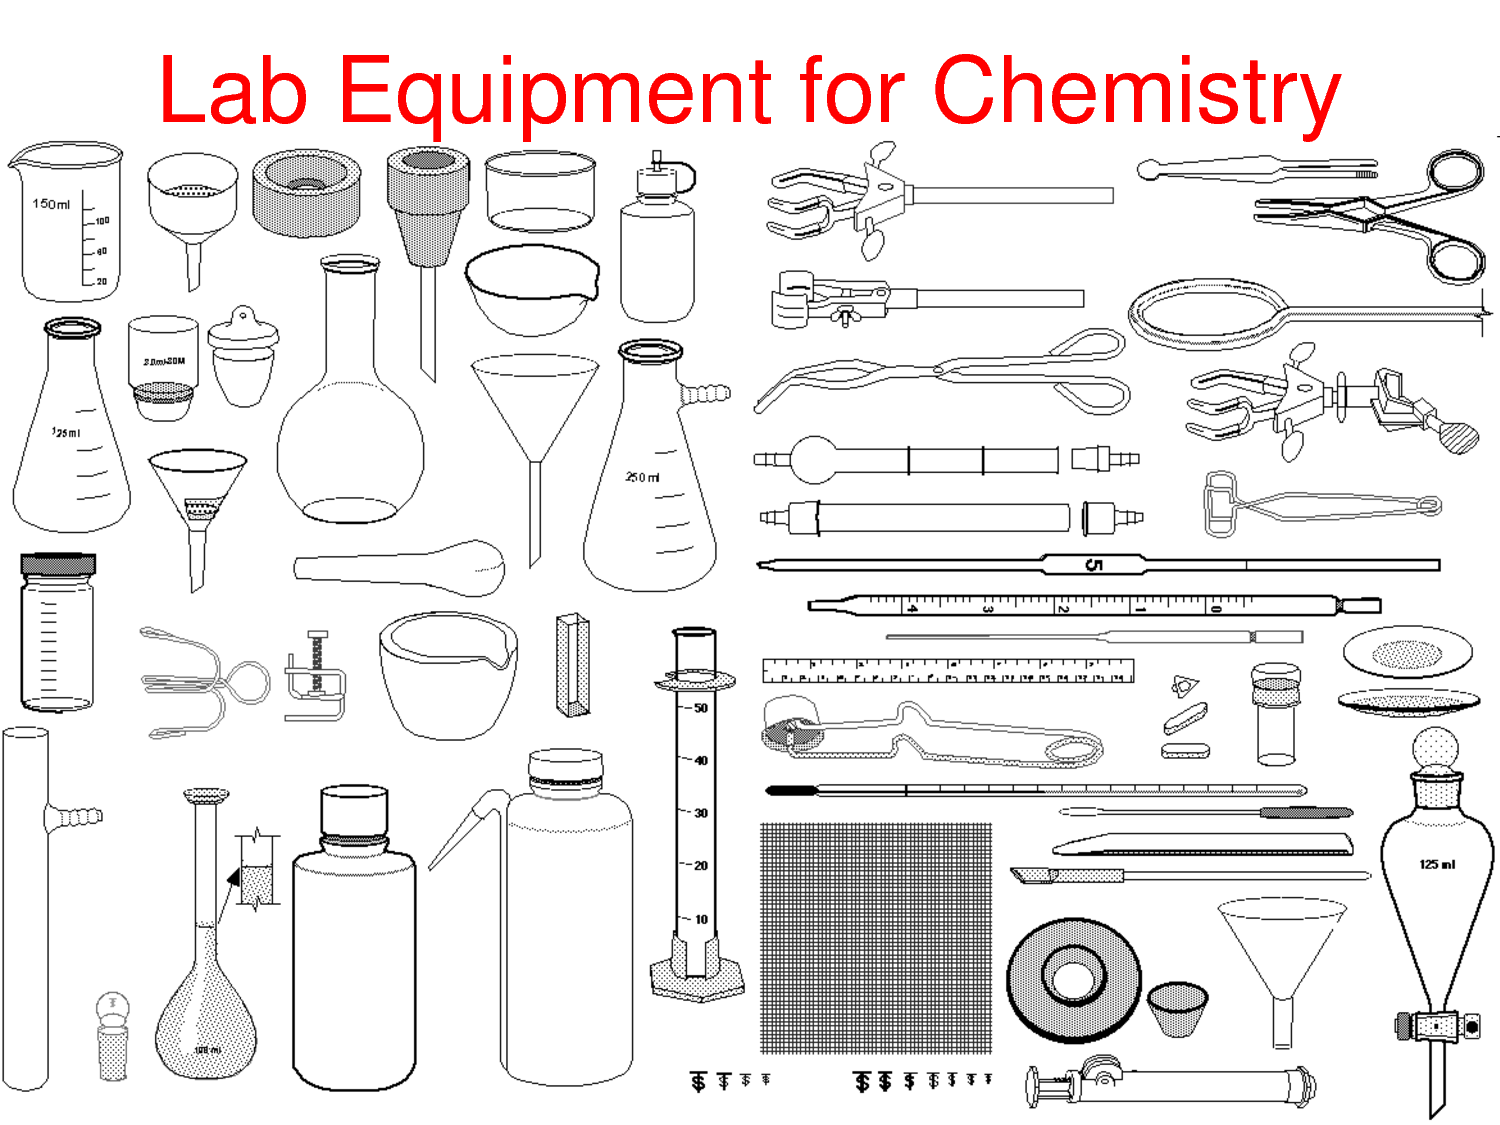 Worksheets Science Equipment Worksheet collection of biology lab equipment worksheet bloggakuten bloggakuten